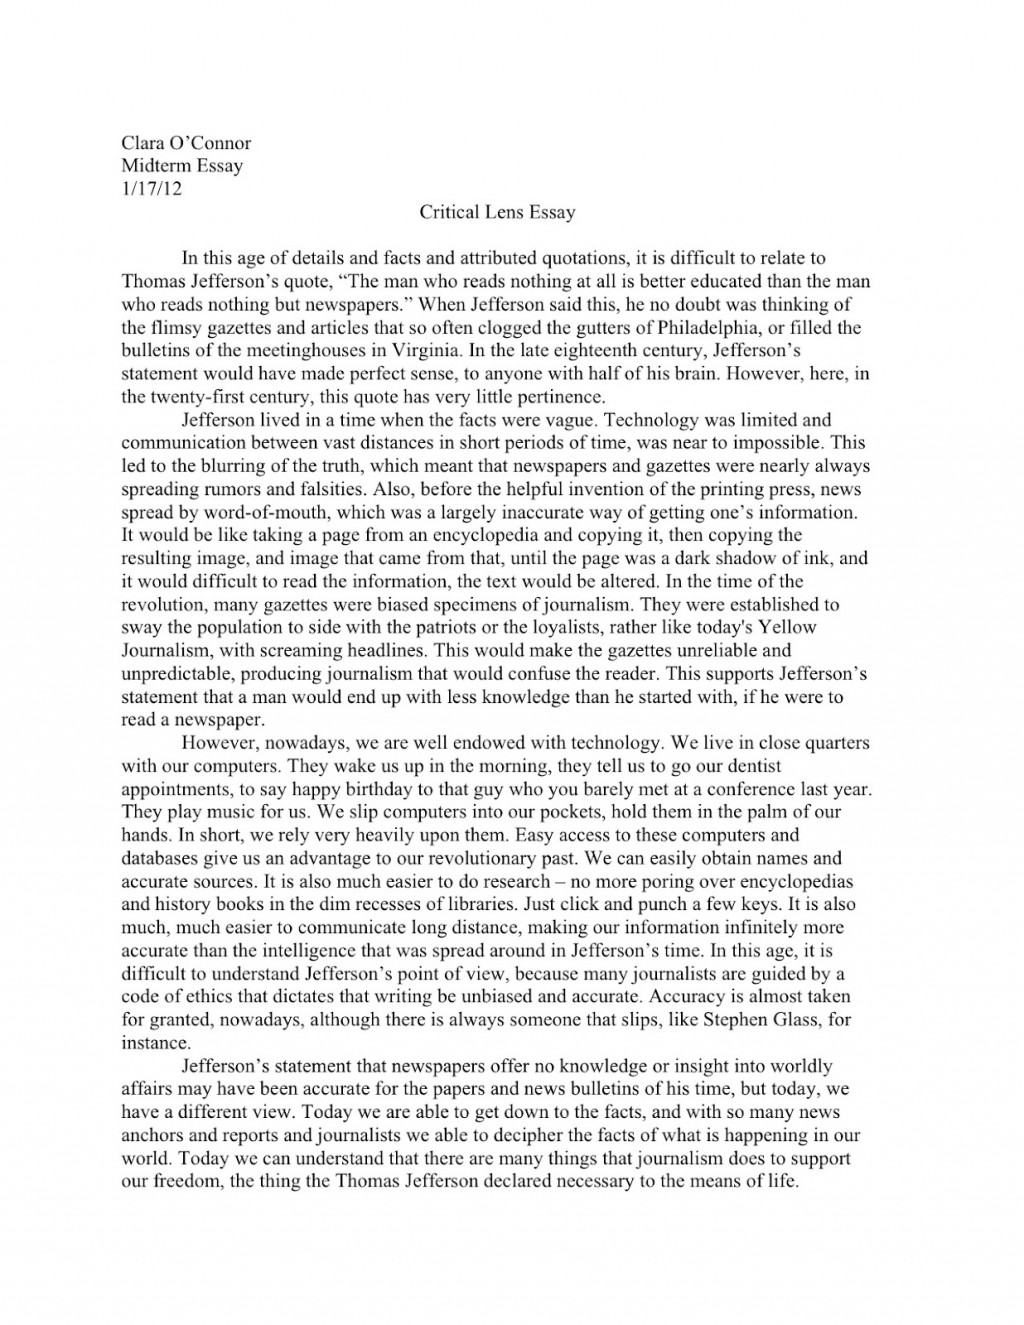 015 Cw252bcritical252blens252bessay Essay Example Summary Excellent Response Pdf Strong Large